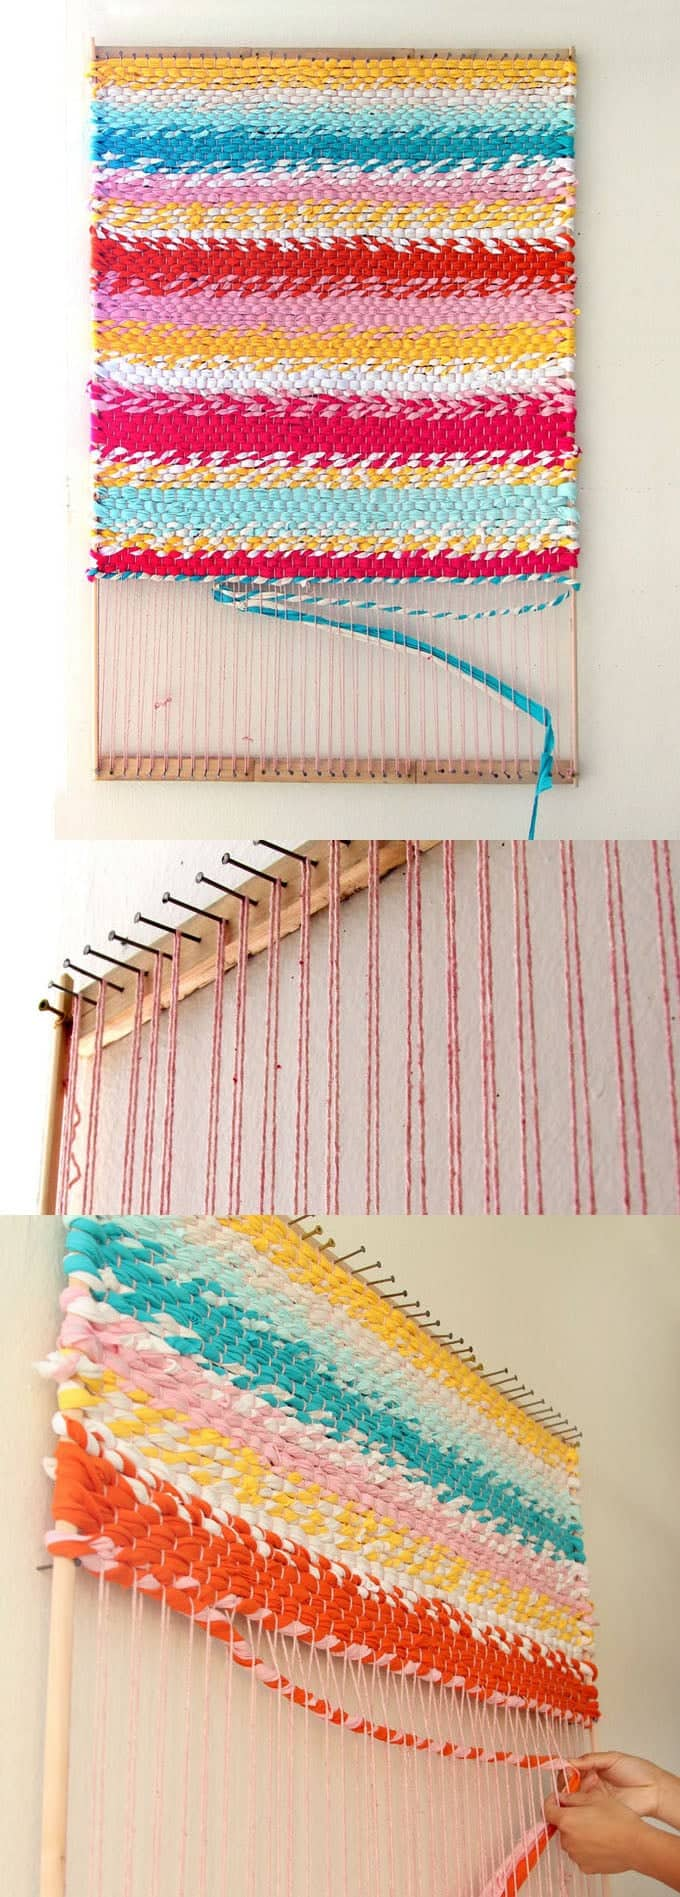 Weave A Boho T Shirt Rag Rug With Easy Diy Loom A Piece Of Rainbow